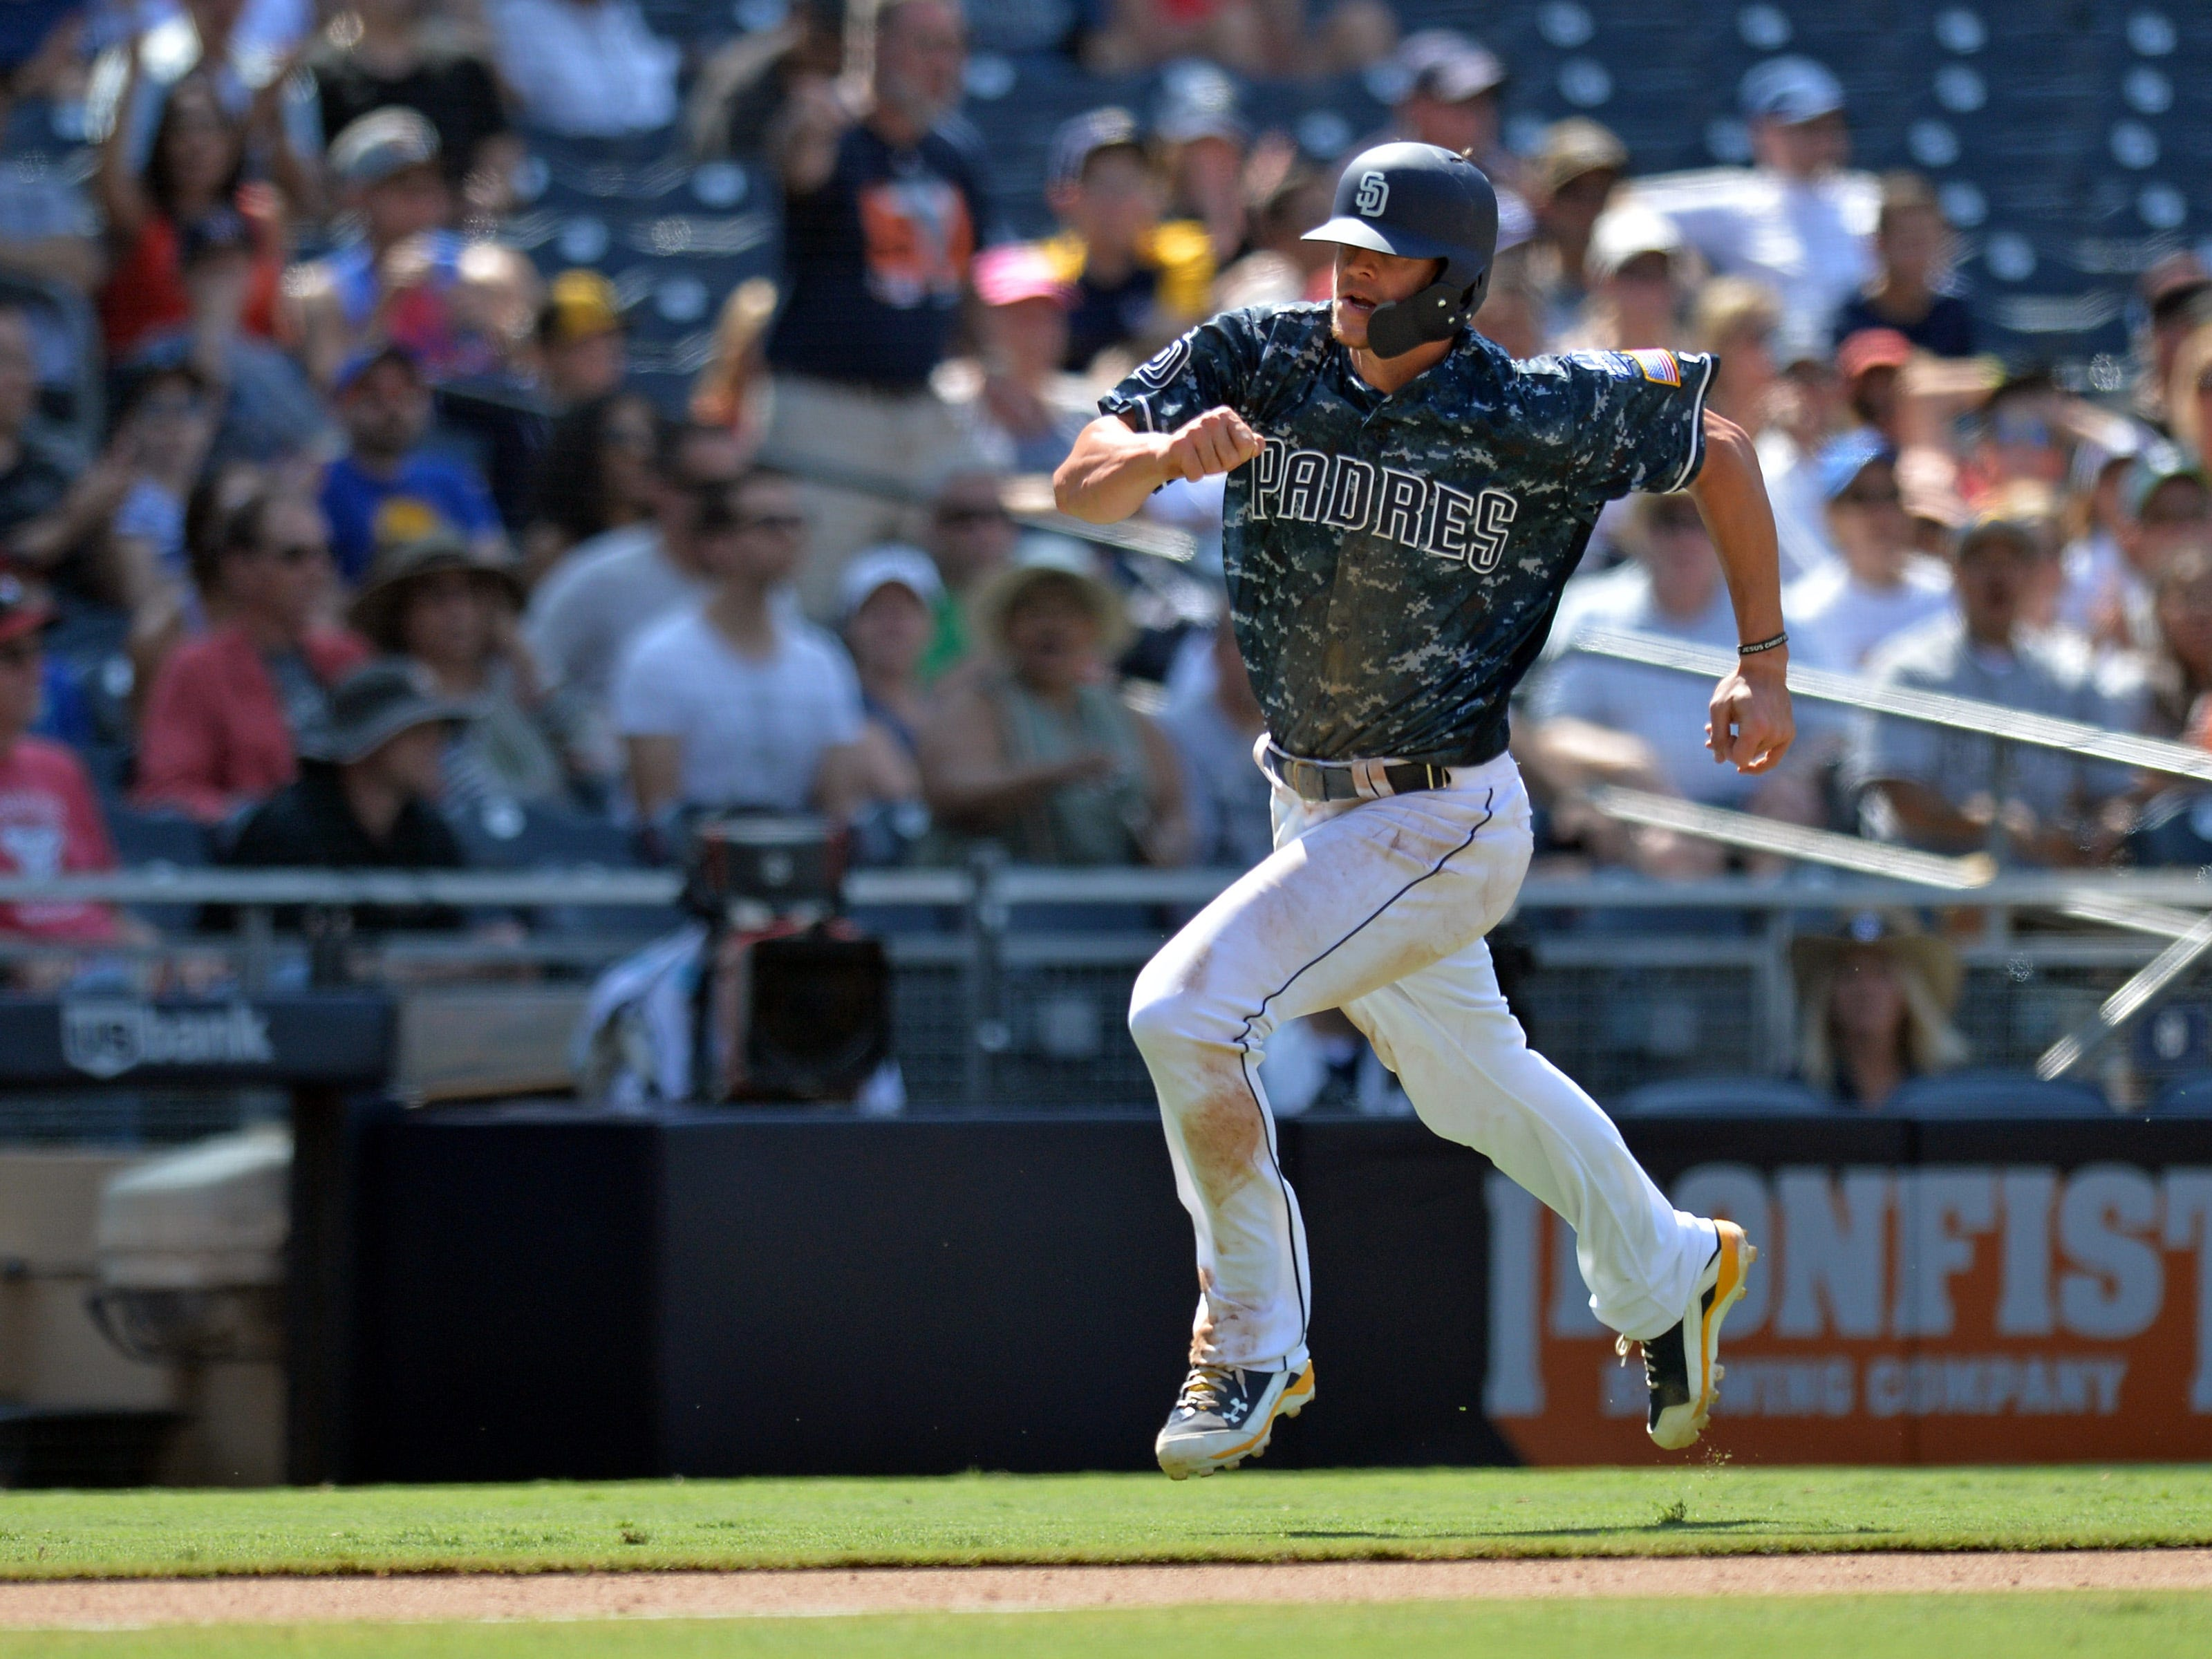 Aug 19, 2018; San Diego, CA, USA; San Diego Padres third baseman Wil Myers (4) scores on a single by left fielder Hunter Renfroe (not pictured) in the sixth inning against the Arizona Diamondbacks at Petco Park. Mandatory Credit: Jake Roth-USA TODAY Sports